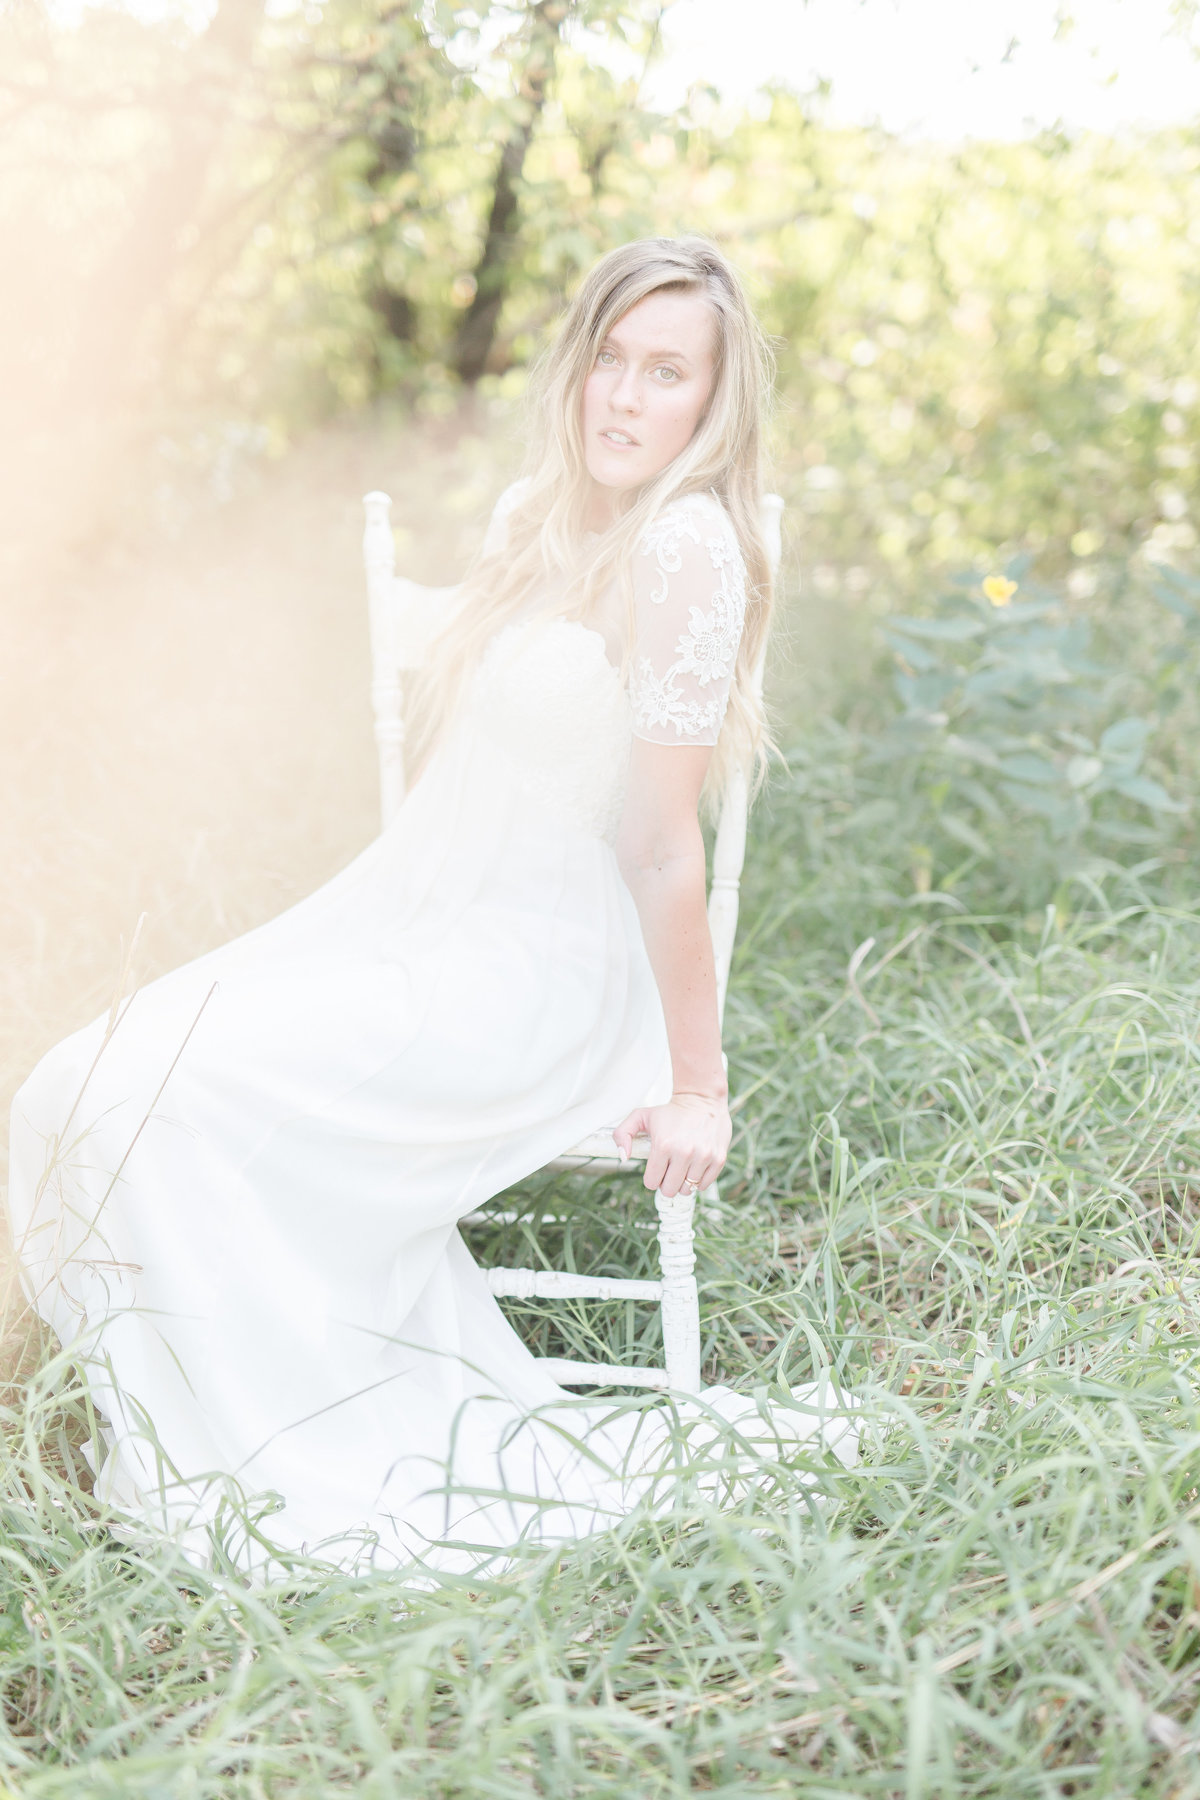 Kailey - Styled Shoot - New Edits-116